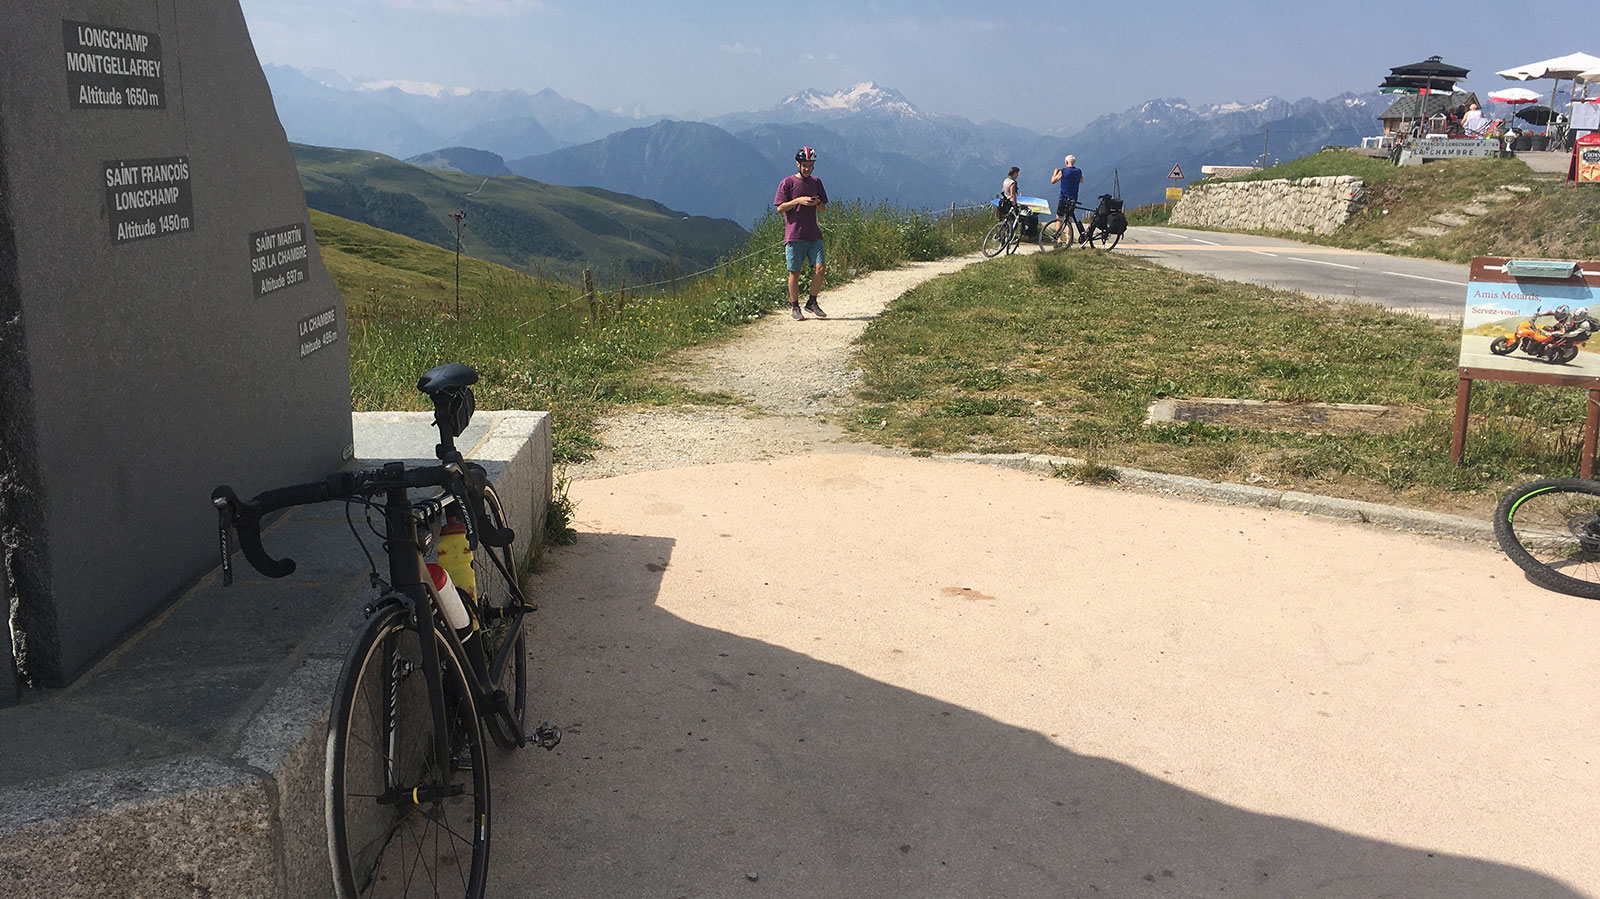 Vue Col de la Madeleine Cycle from Chamonix to Nice via route des Grands Alpes